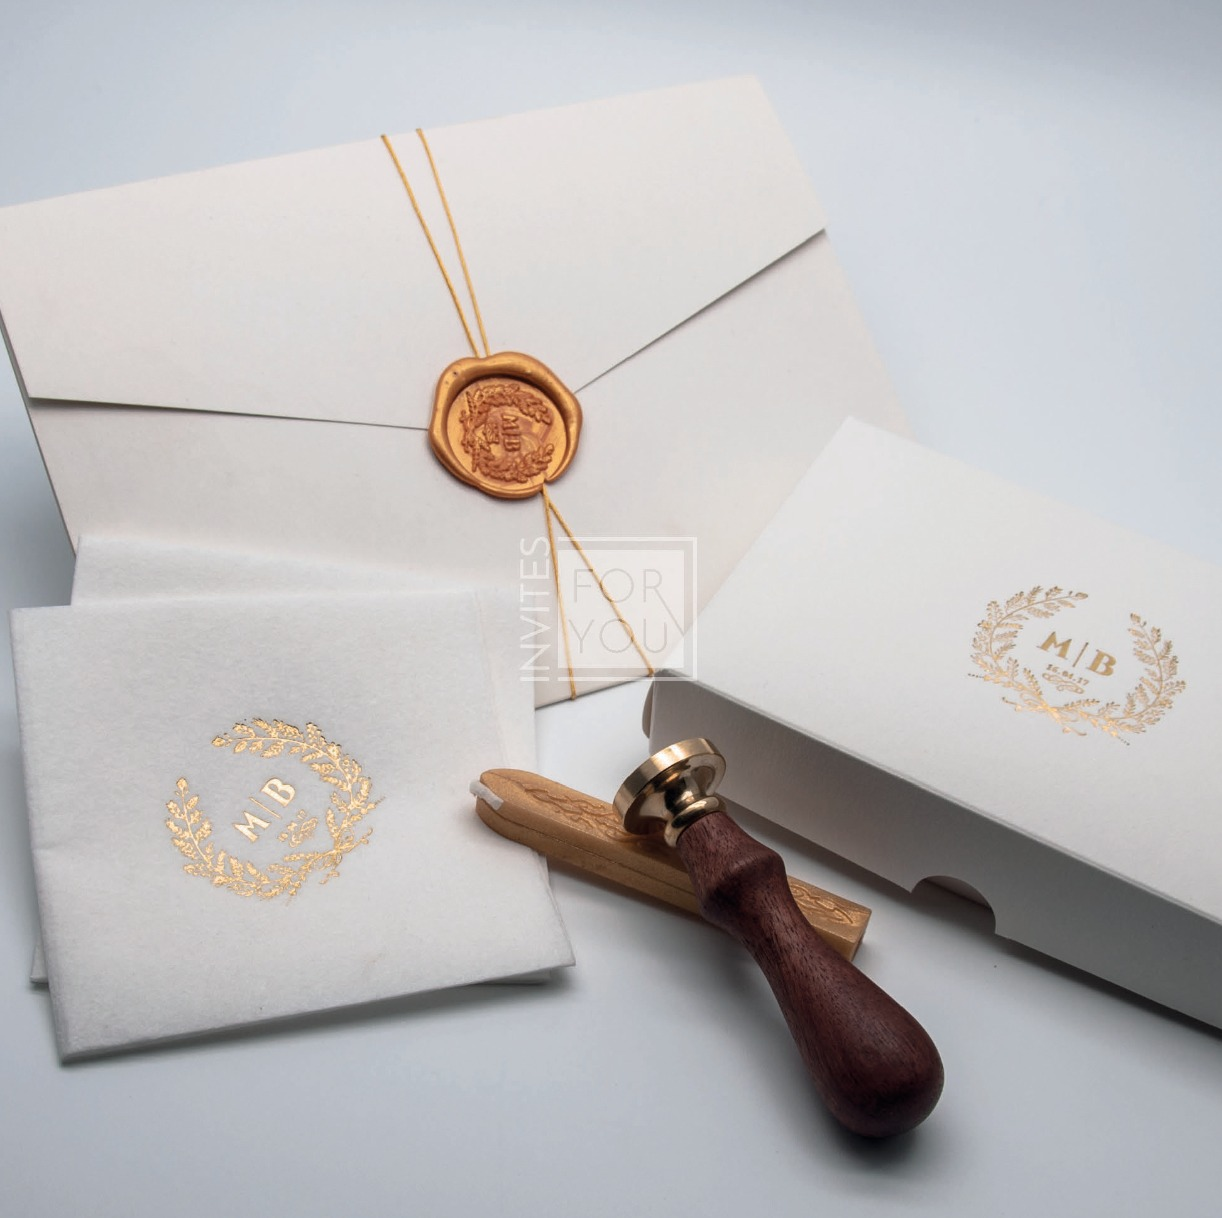 High End wedding stationery